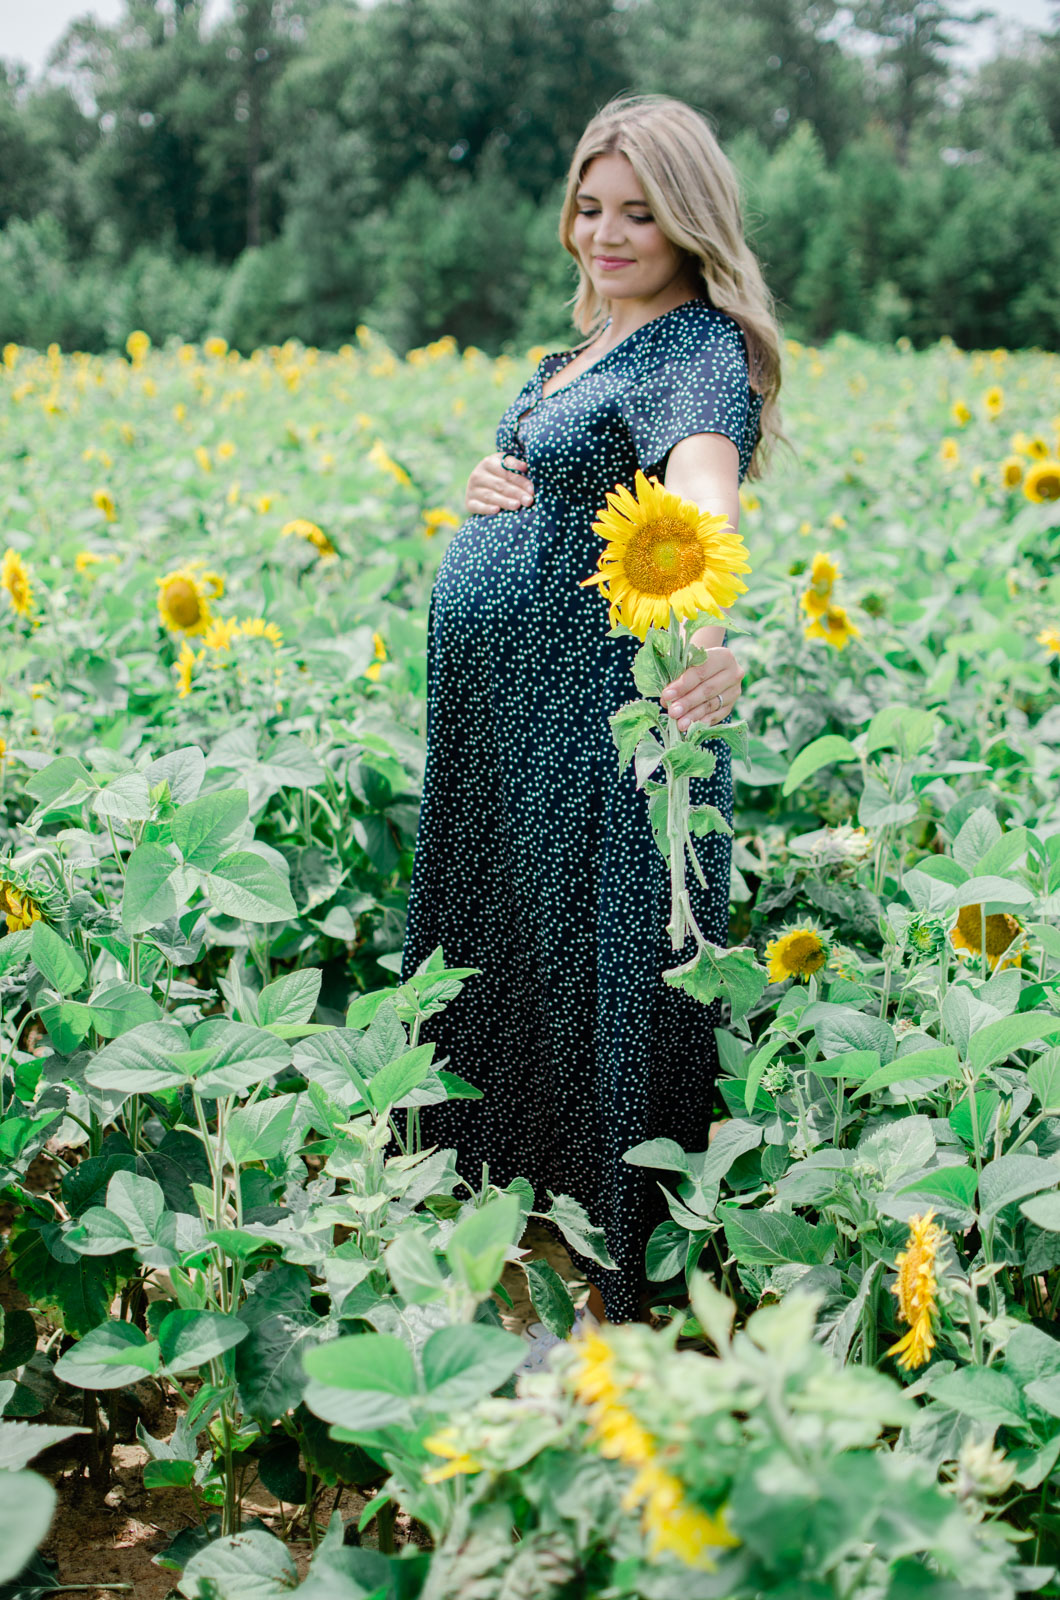 sunflower maternity session - summer maternity photos 36 weeks pregnant | bylaurenm.com